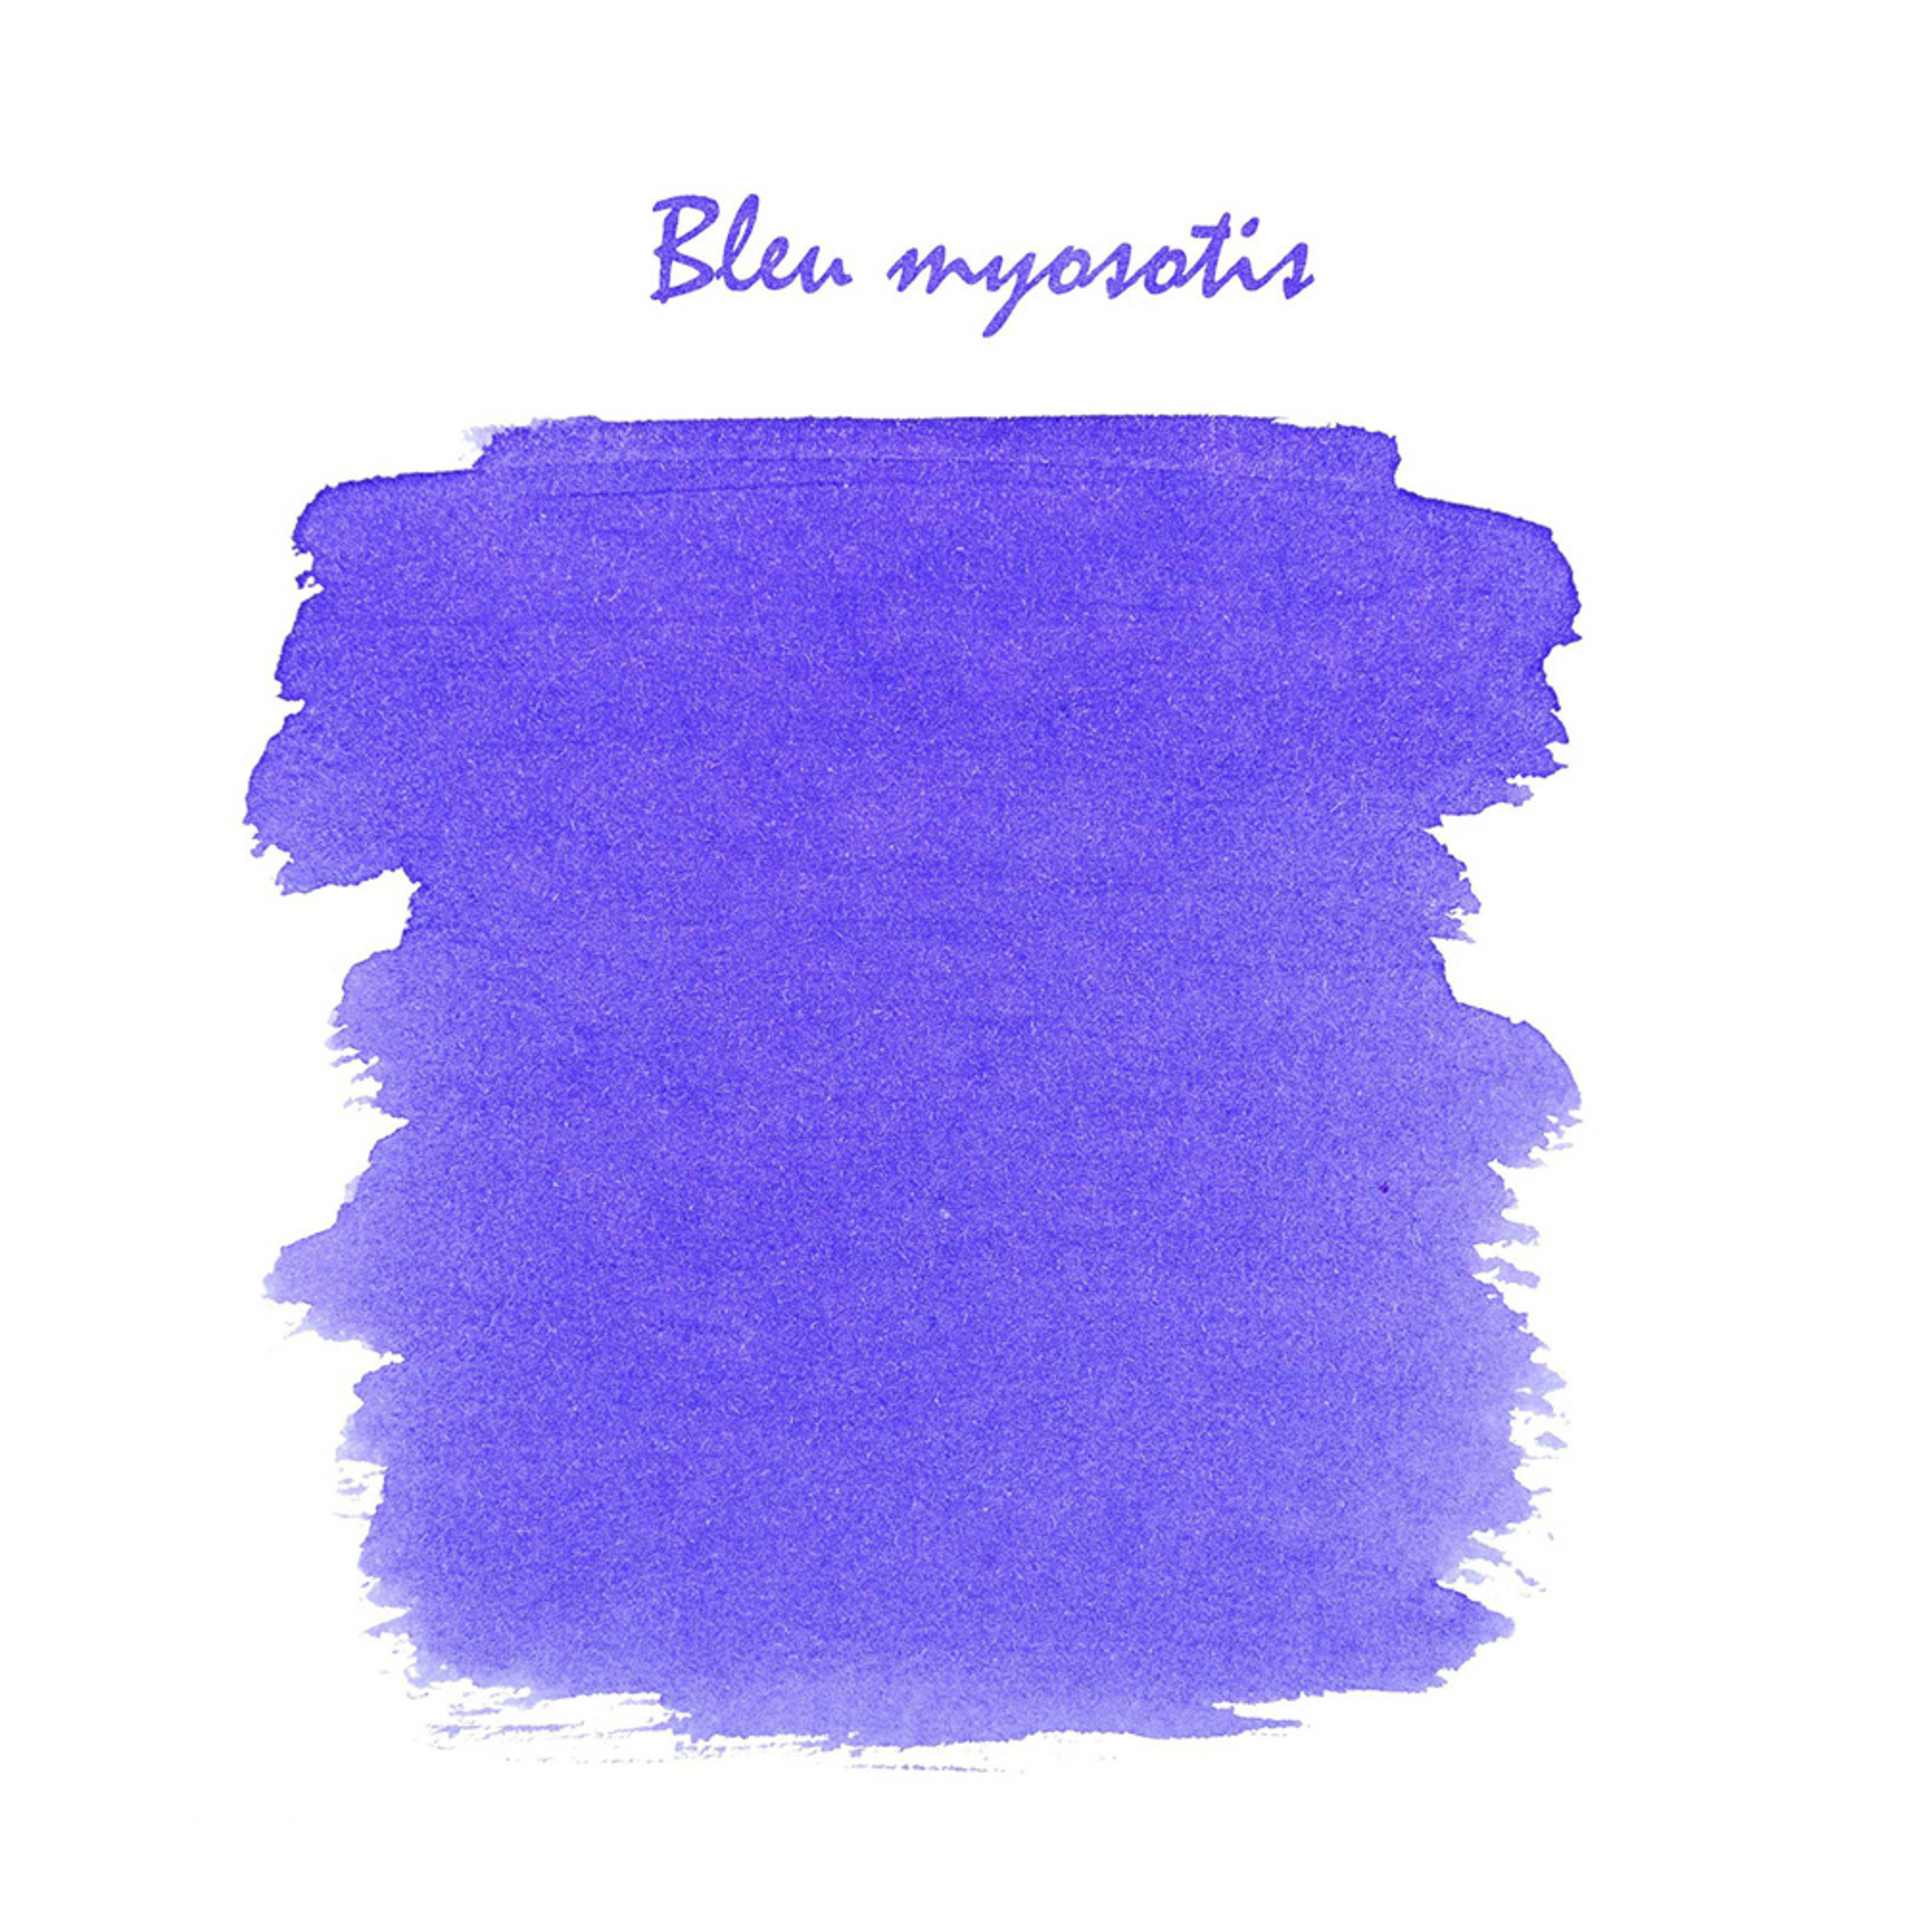 J.Herbin 10ml Fountain Pen Ink Bleu Myosotis